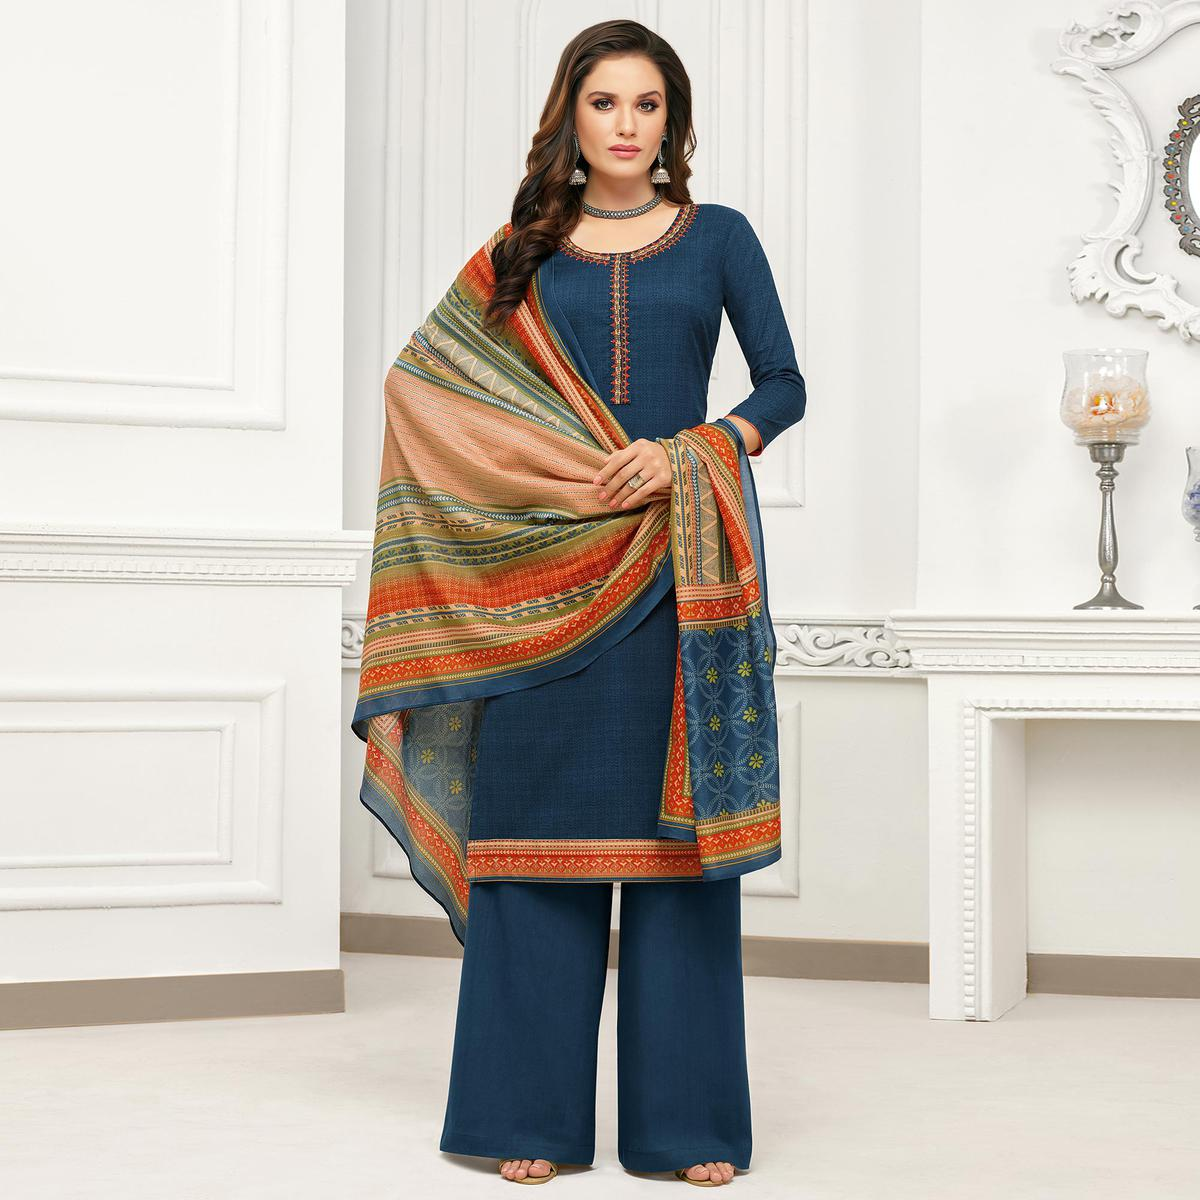 Appealing Blue Colored Casual Wear Pure Cambric Cotton Palazzo Suit